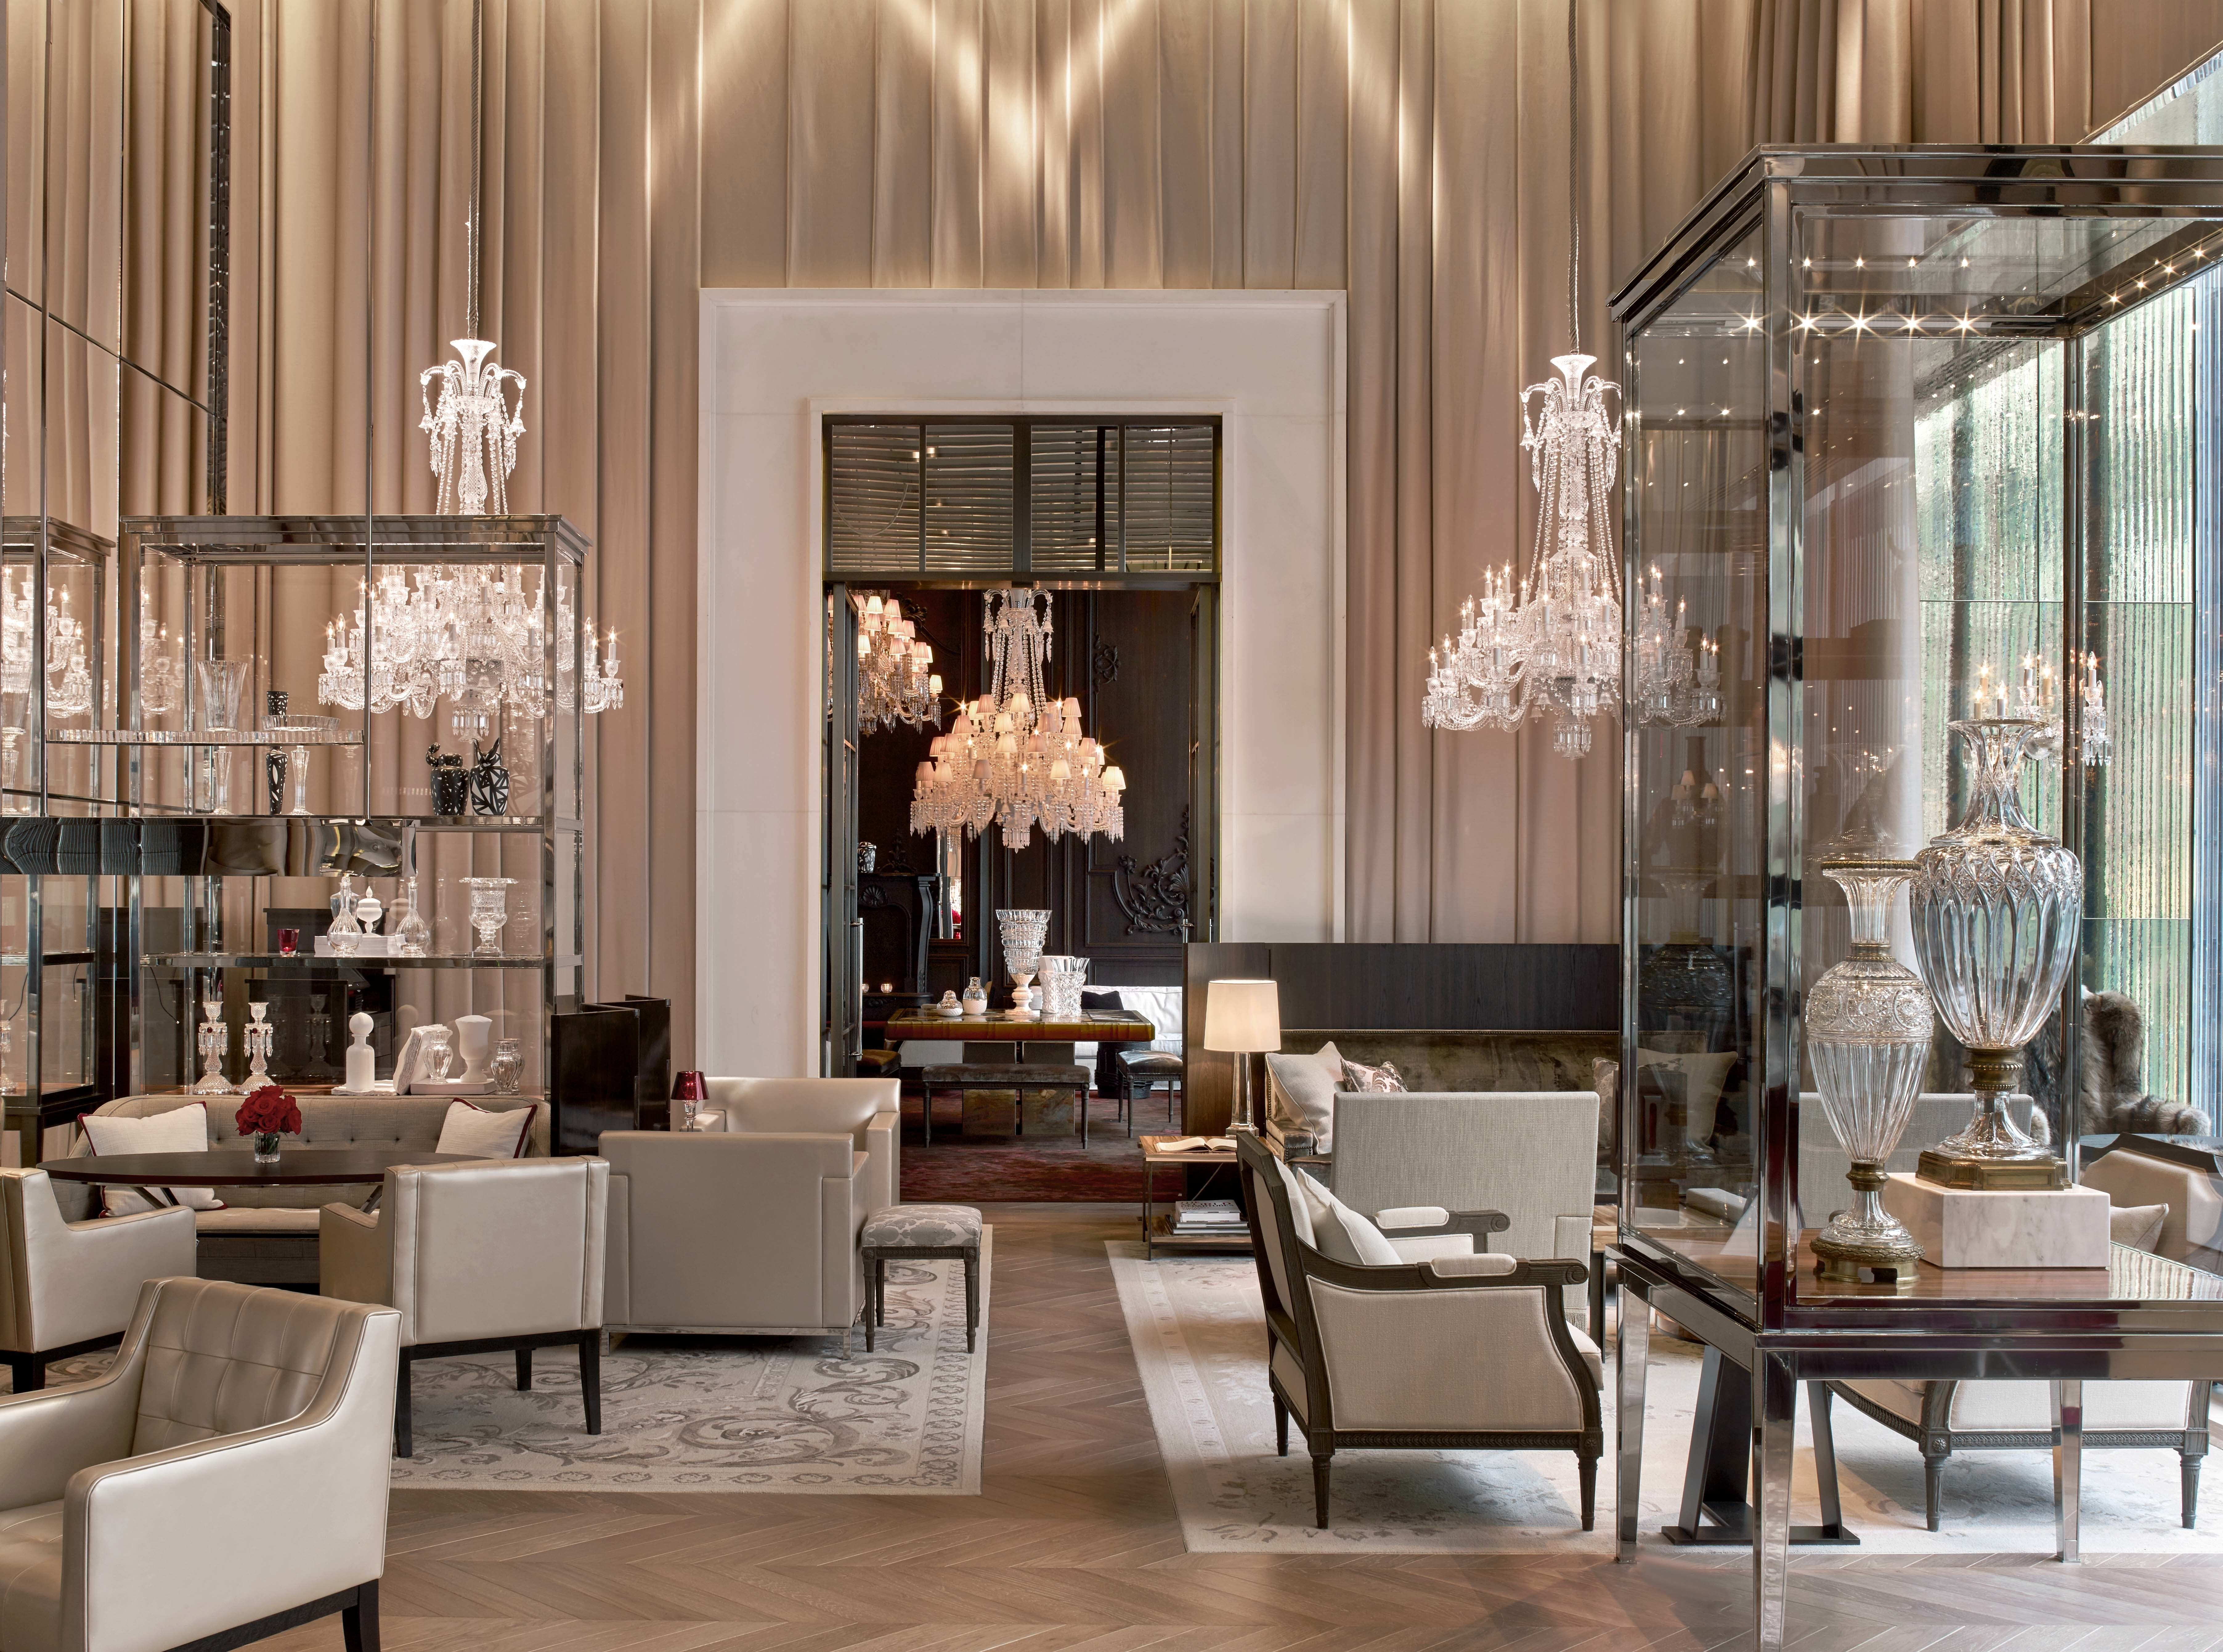 Distinct Chandeliers Highlight This Hotel Lobby